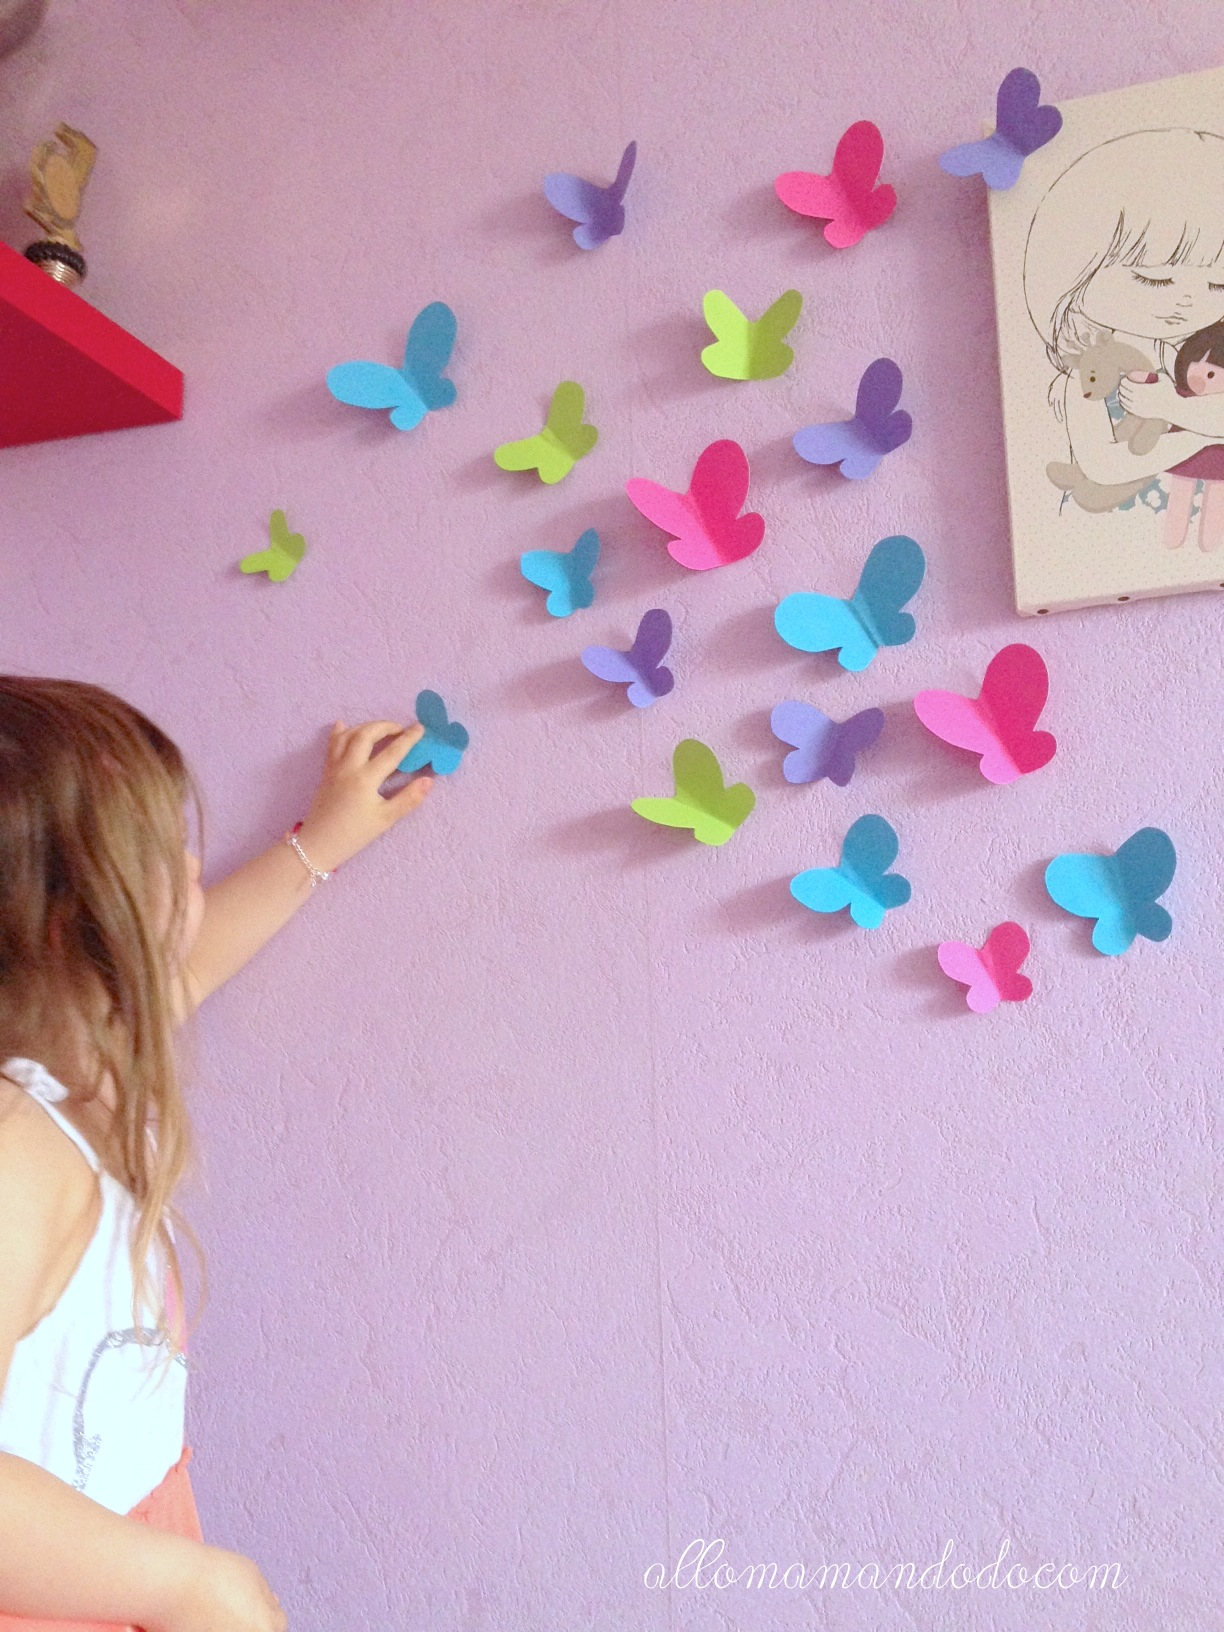 diy envol e de papillons en papier activit pour enfants d co murale allo maman dodo. Black Bedroom Furniture Sets. Home Design Ideas